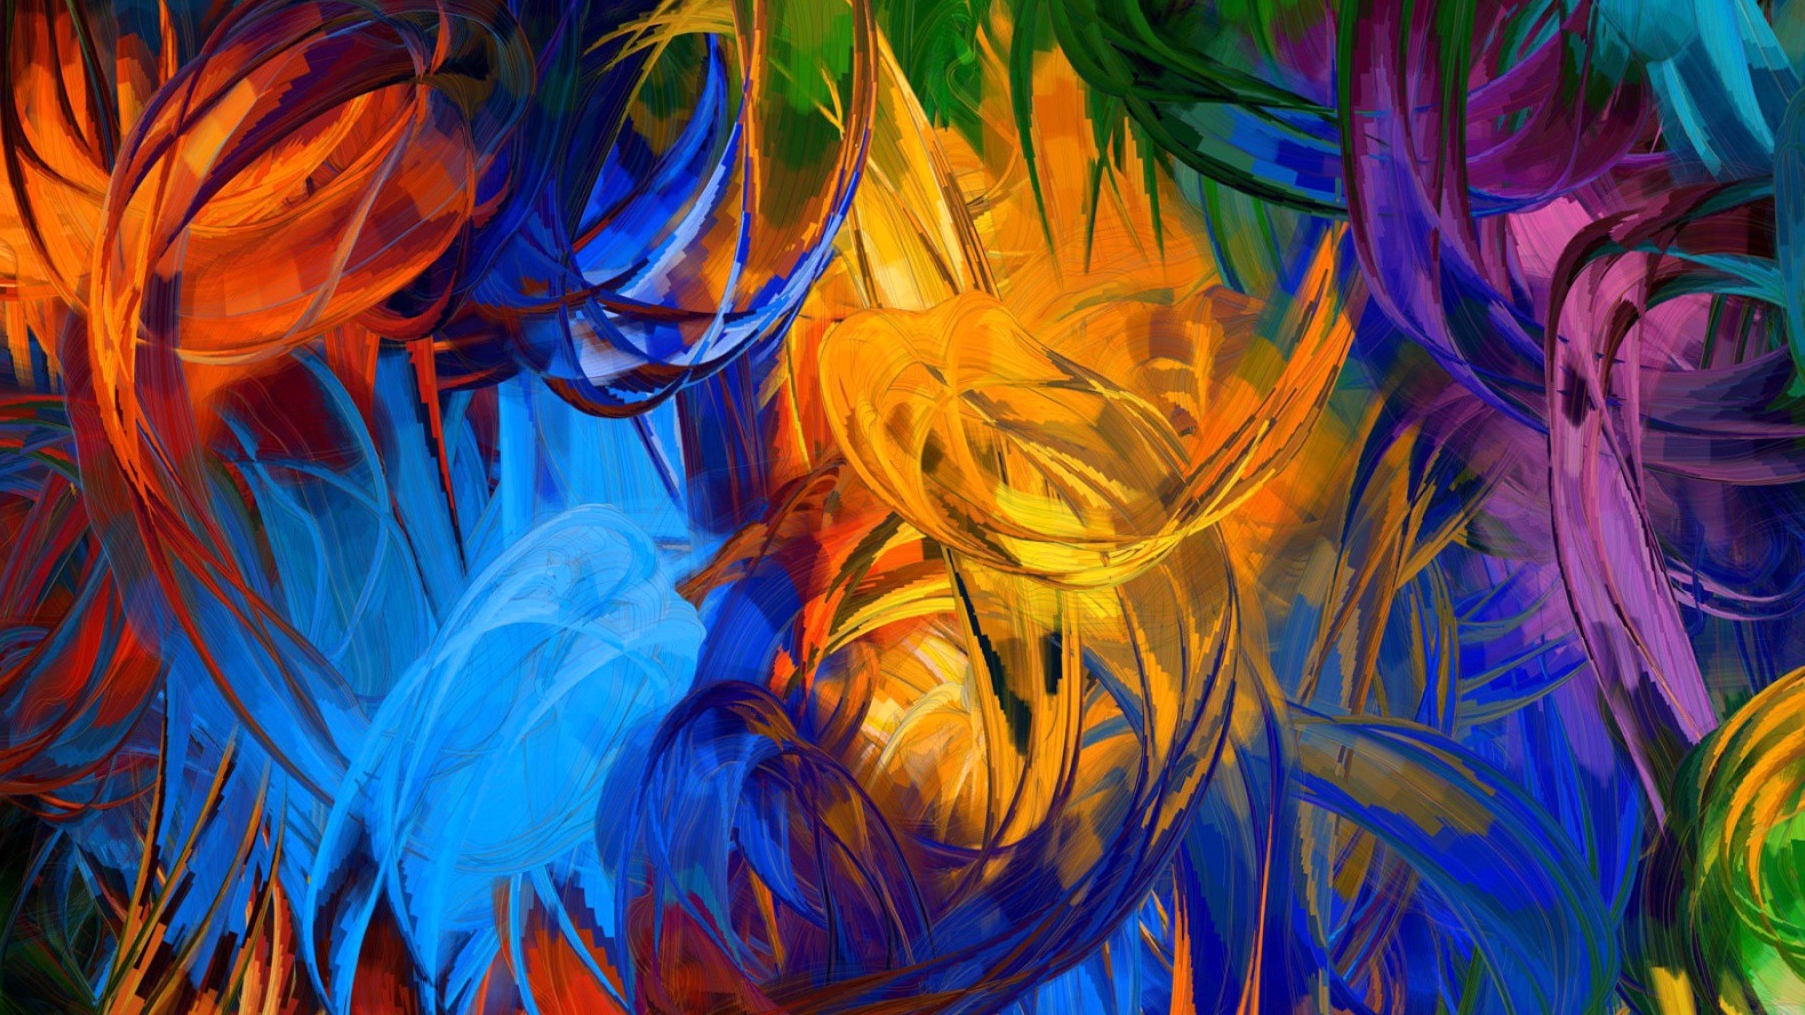 Nature, Abstract, Painting, Android Wallpapers, Colorful, Download Throughout Current Abstract Nature Wall Art (View 17 of 20)